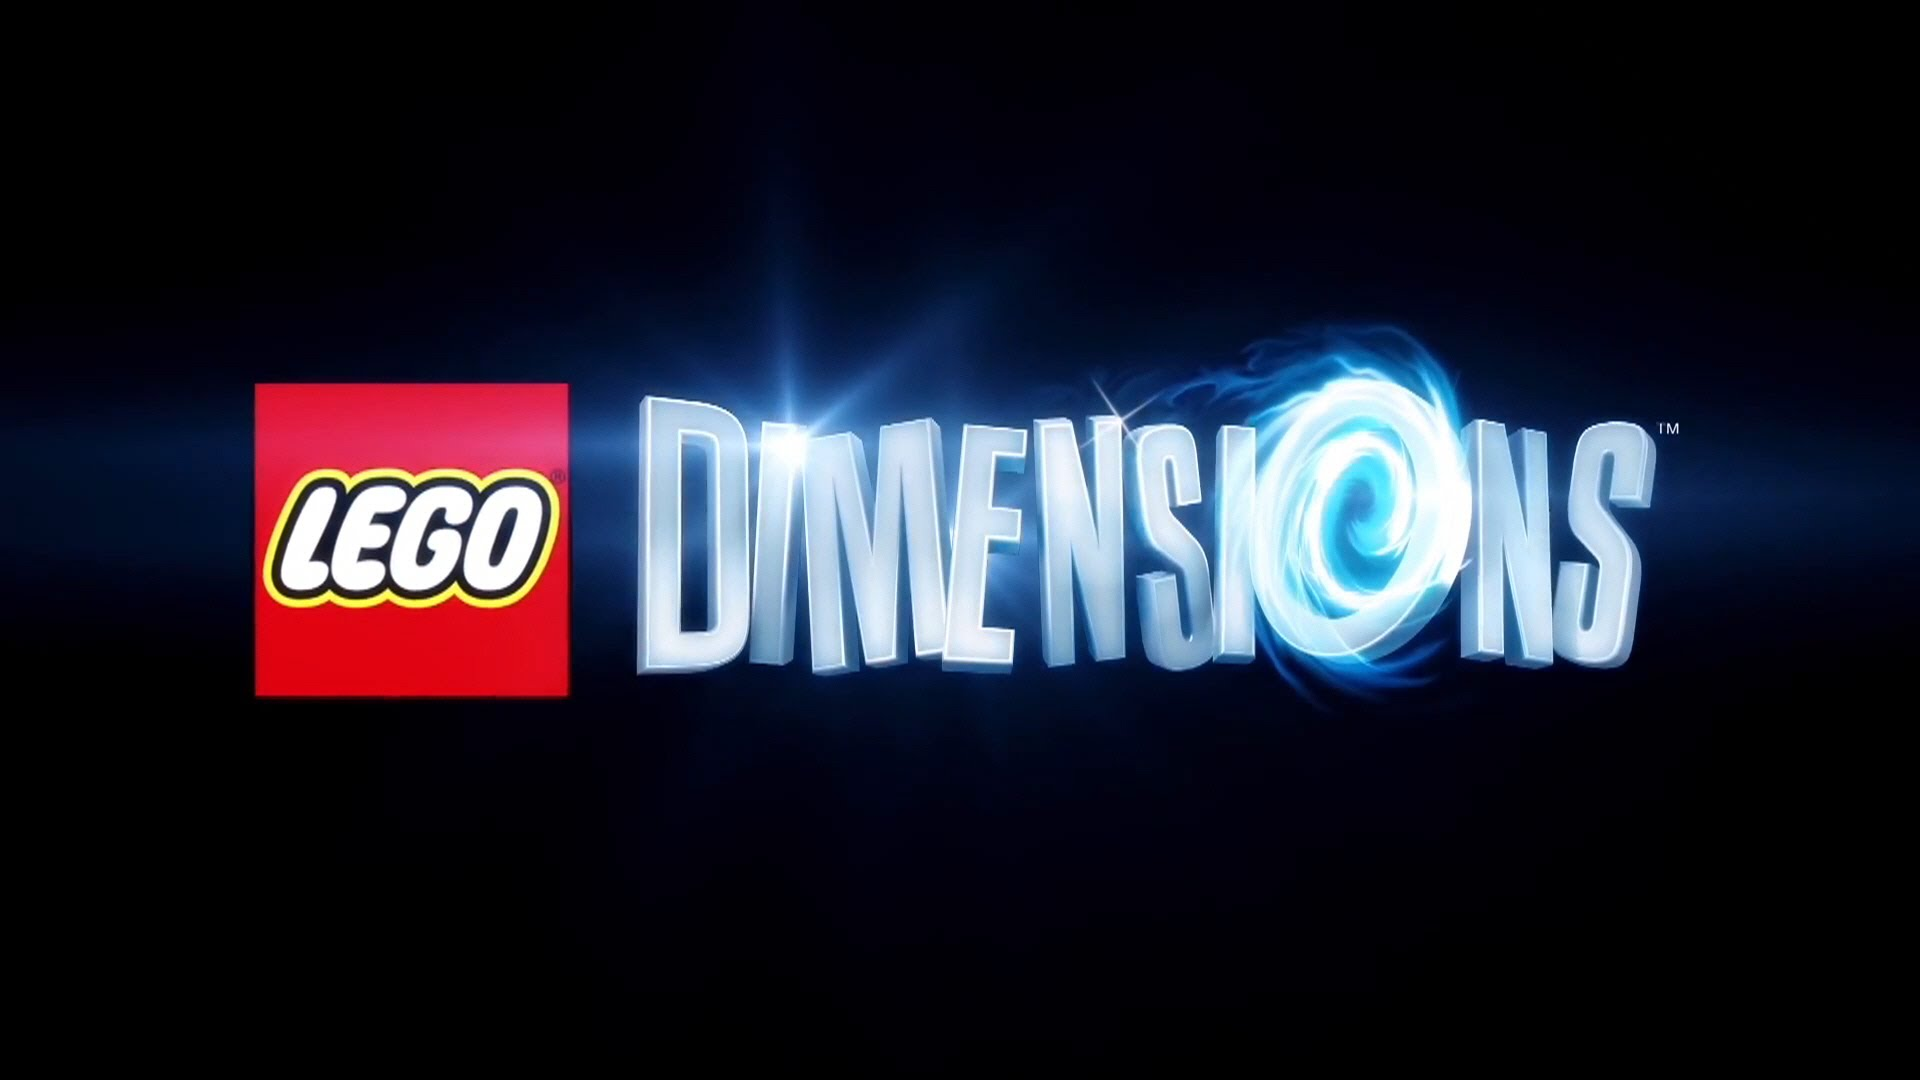 Rumor Sonic The Hedgehog Coming To Lego Dimensions Segabits 1 Source For Sega News